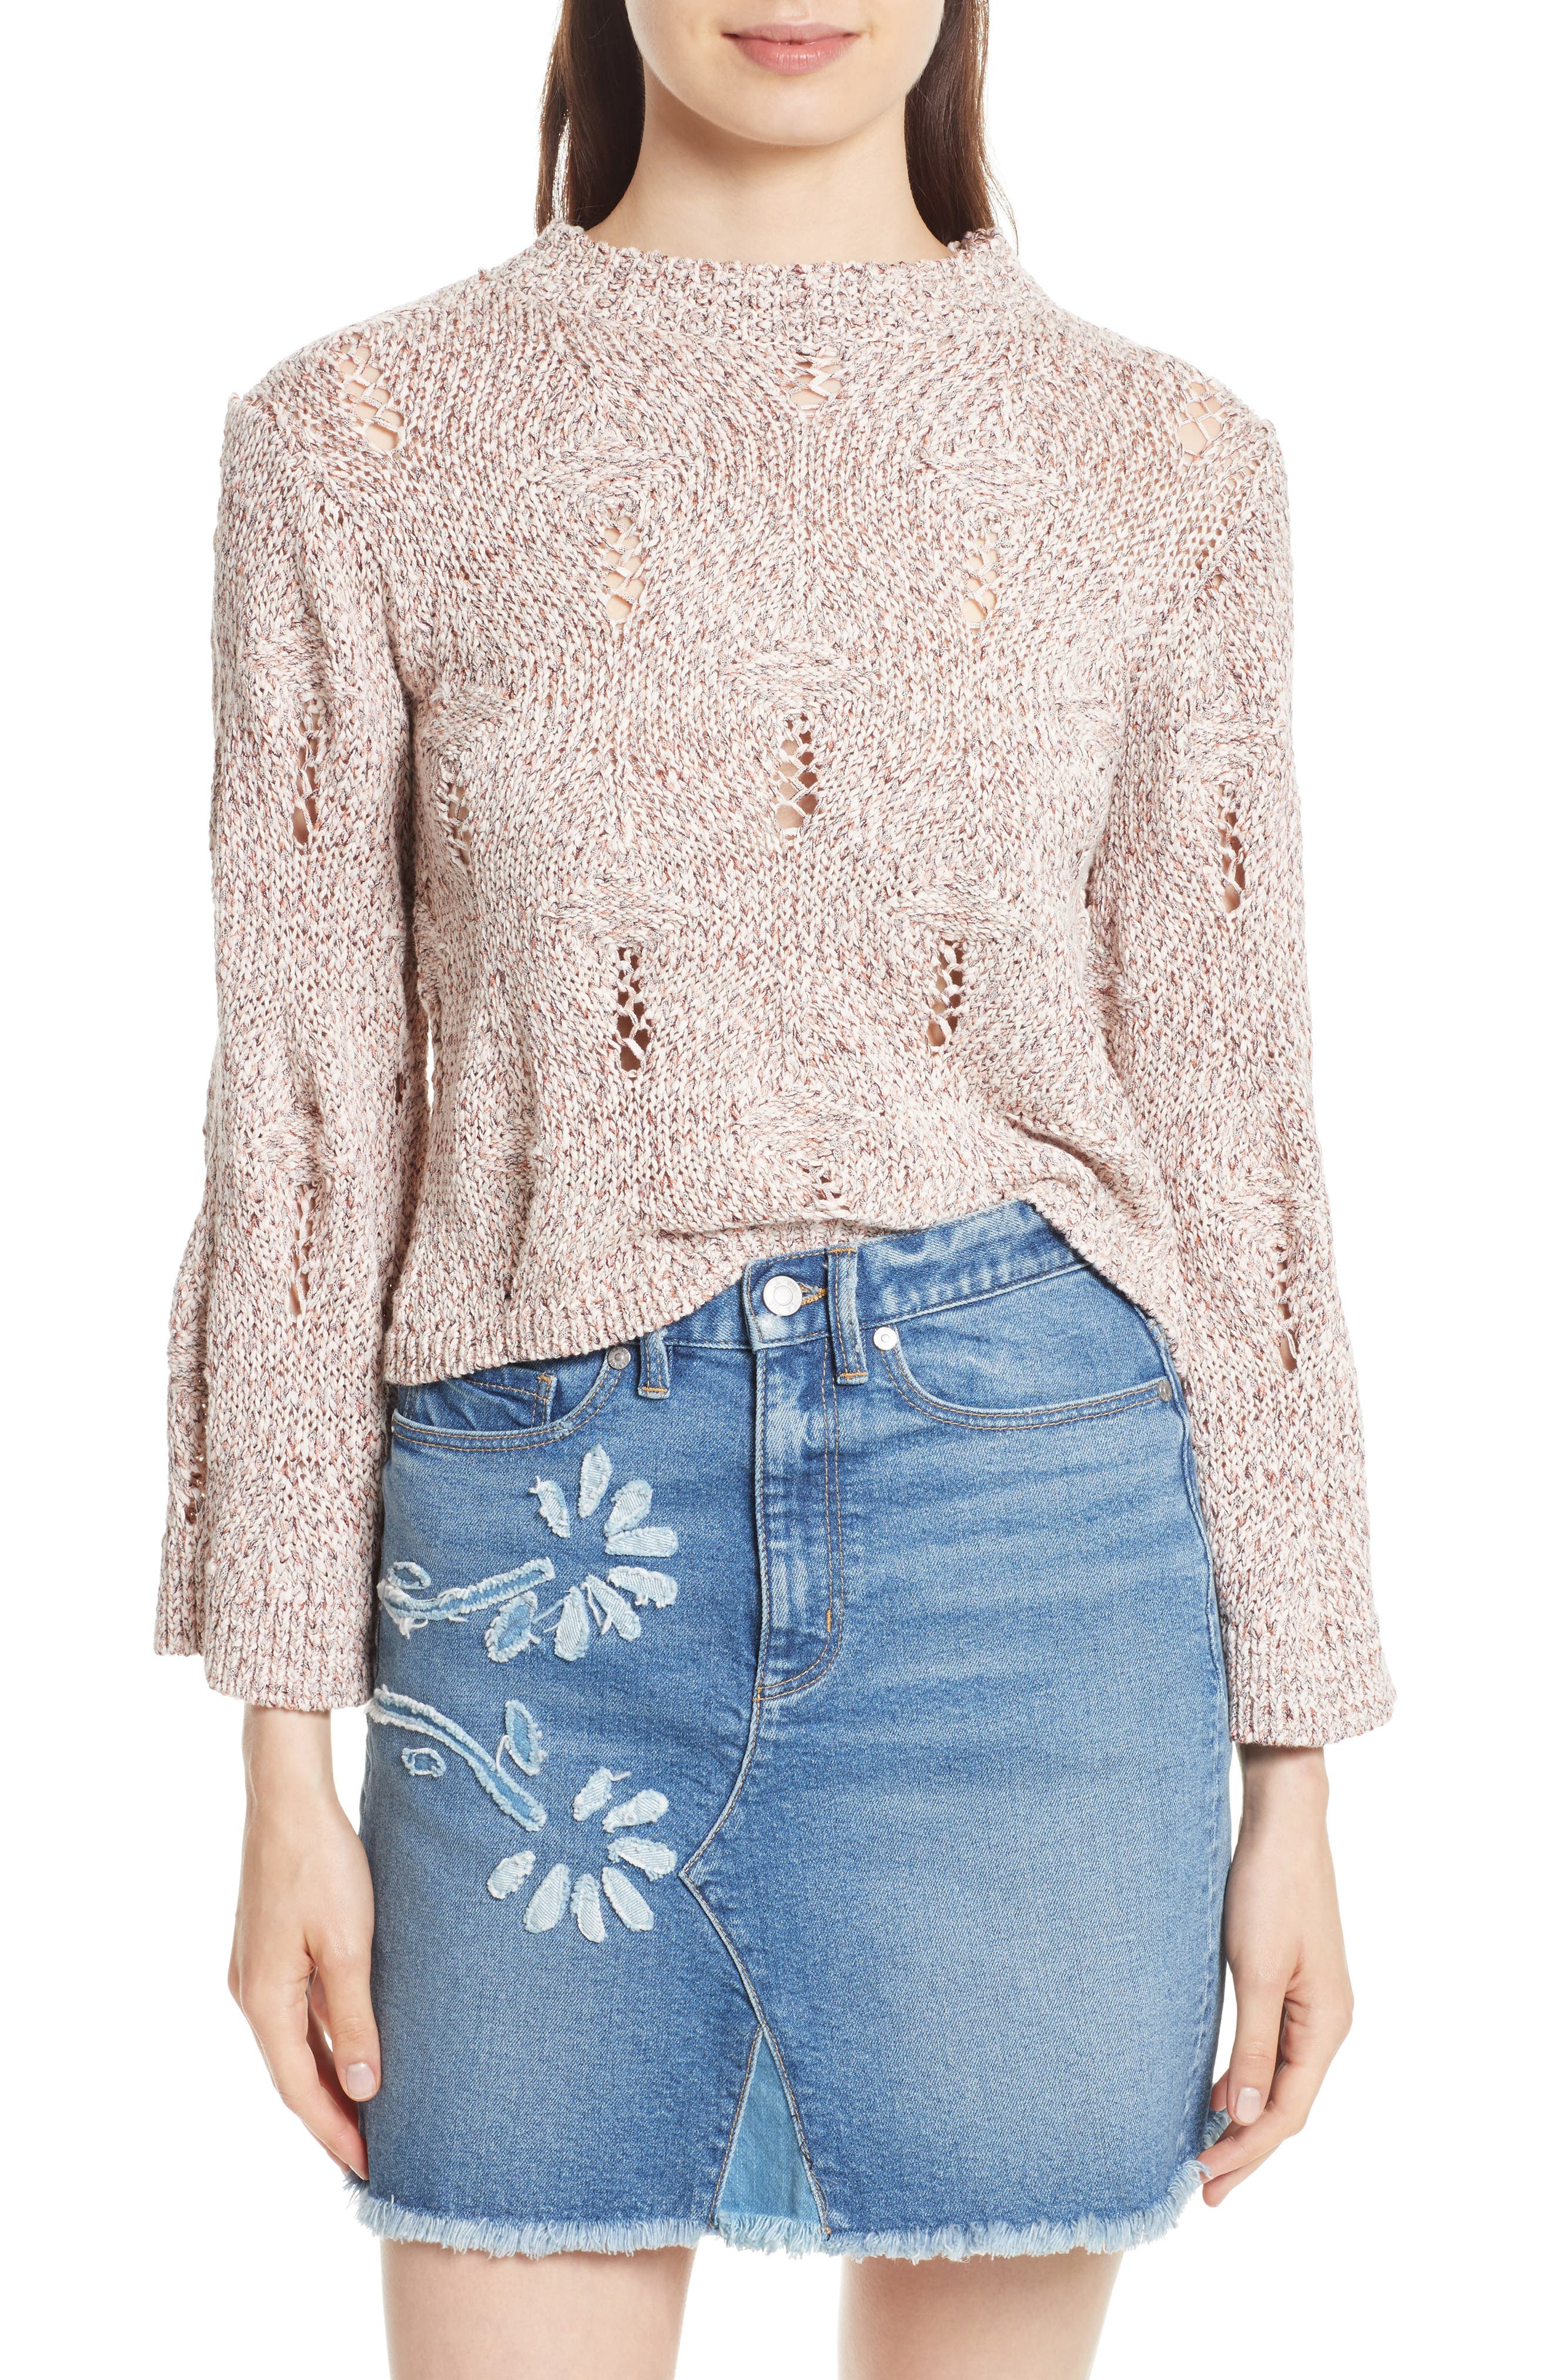 La Vie Rebecca Taylor Summer Ribbon Sweater